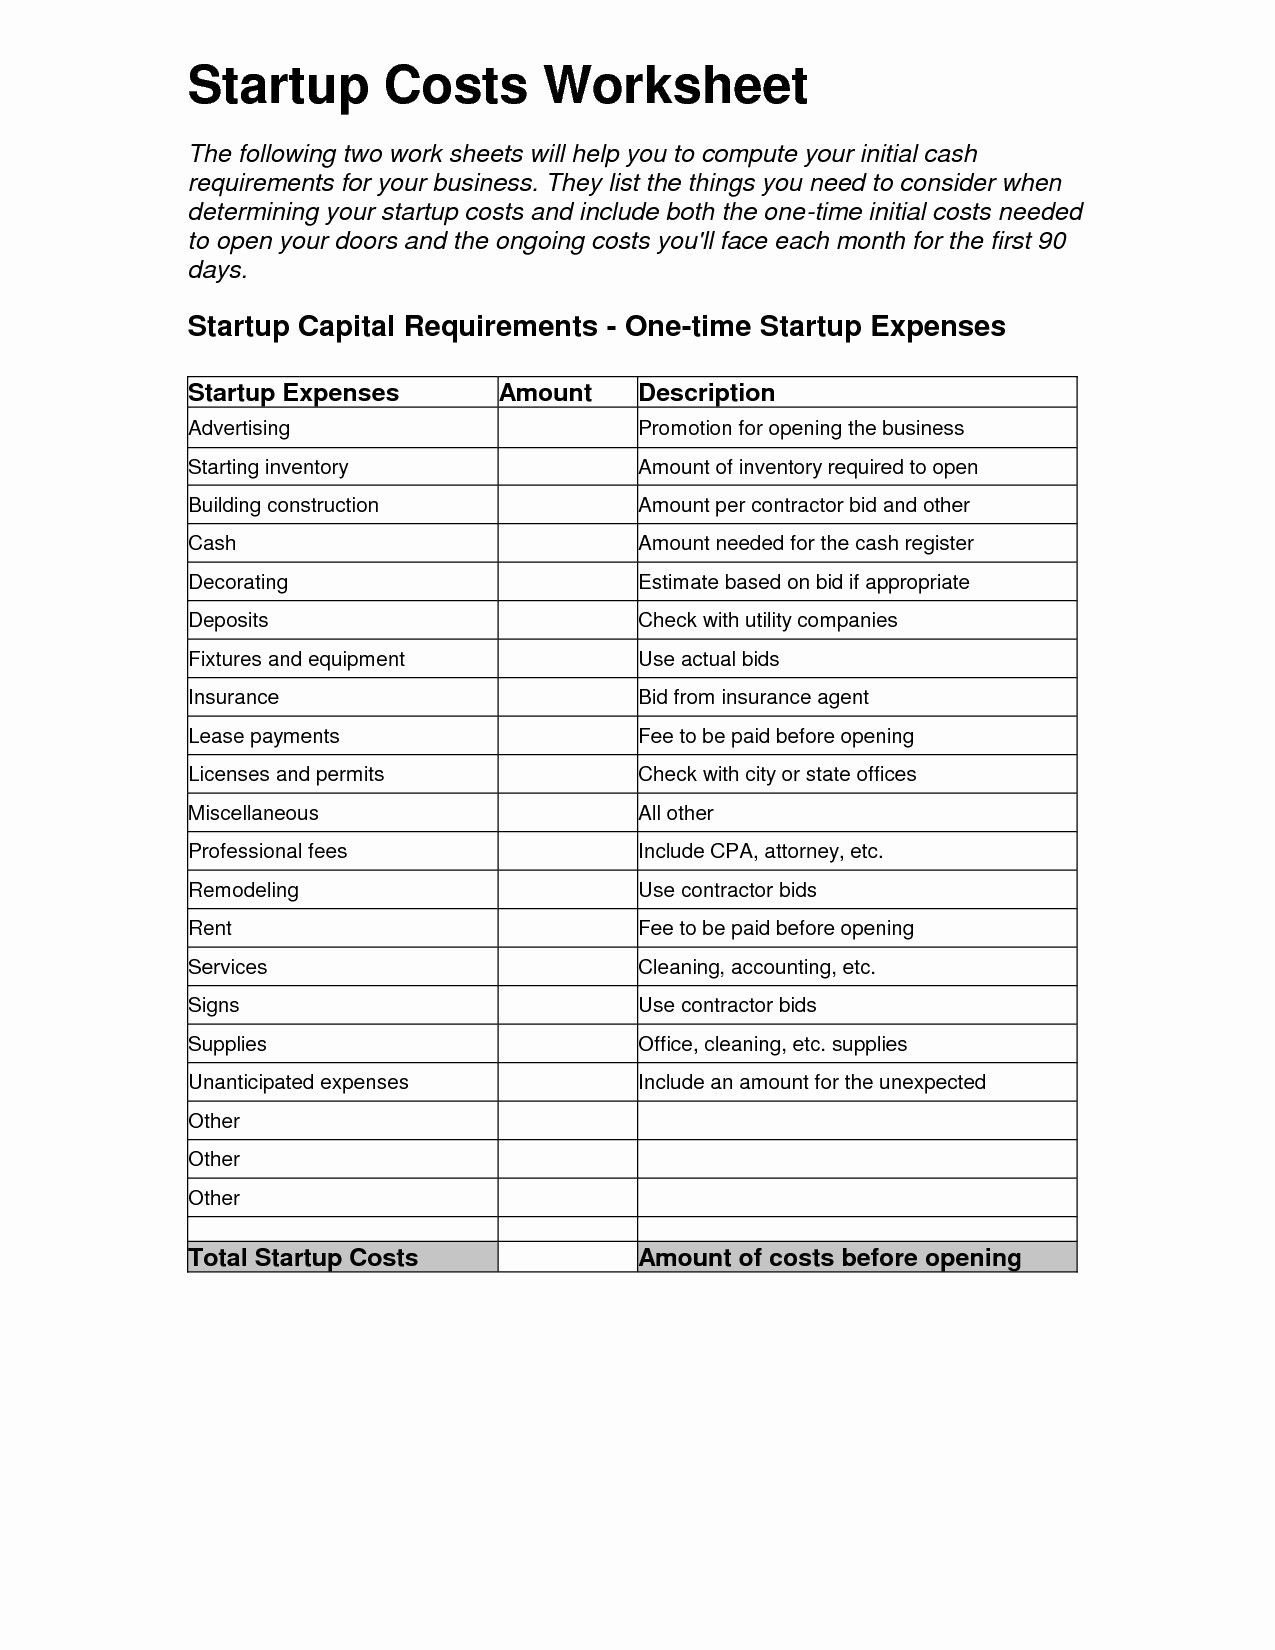 click here to download the printable pdf worksheet for